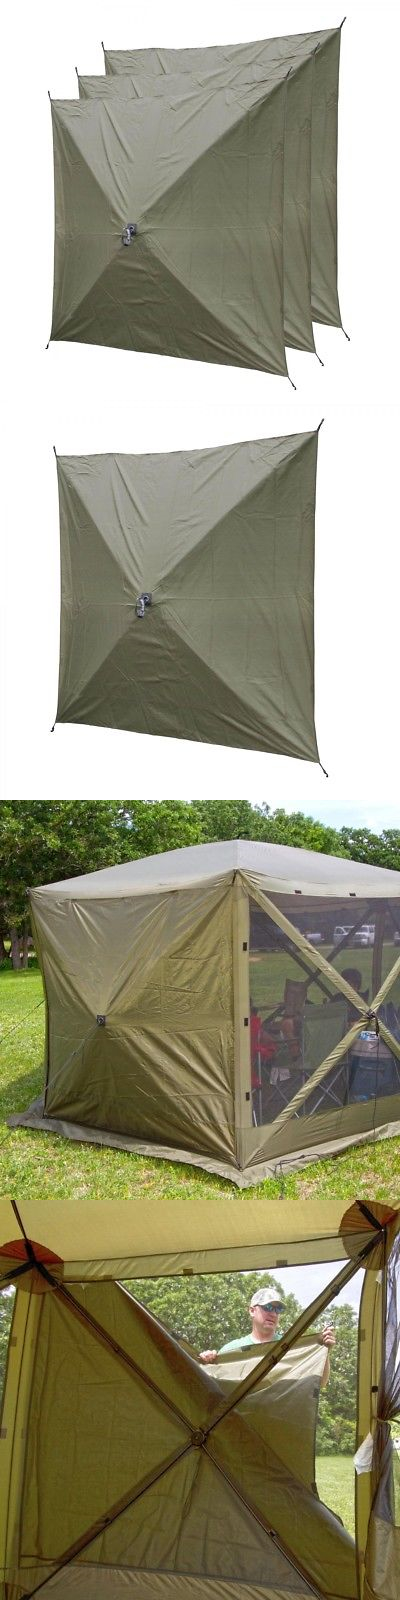 Tent and Canopy Accessories 36120 Clam Quick Set Screen Hub Green Fabric Wind And Sun & Tent and Canopy Accessories 36120: Clam Quick Set Screen Hub Green ...